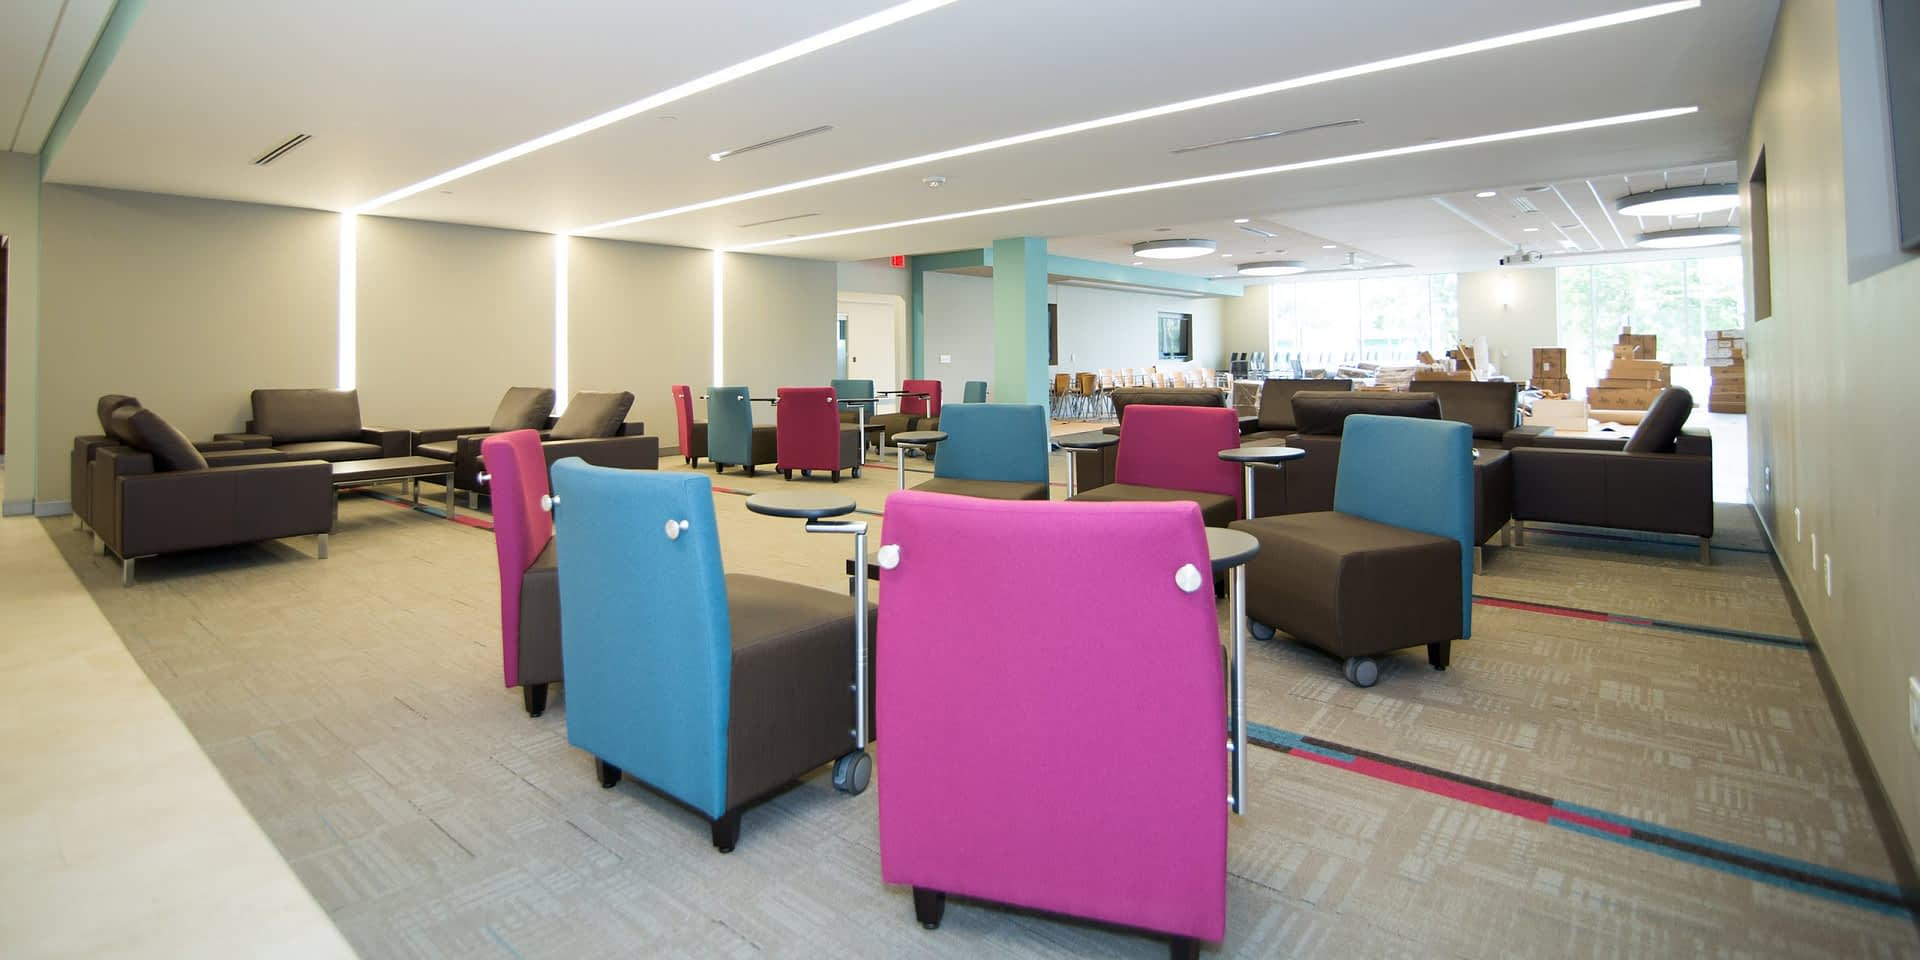 blue, pinks, and gray furniture in a collaborative office space